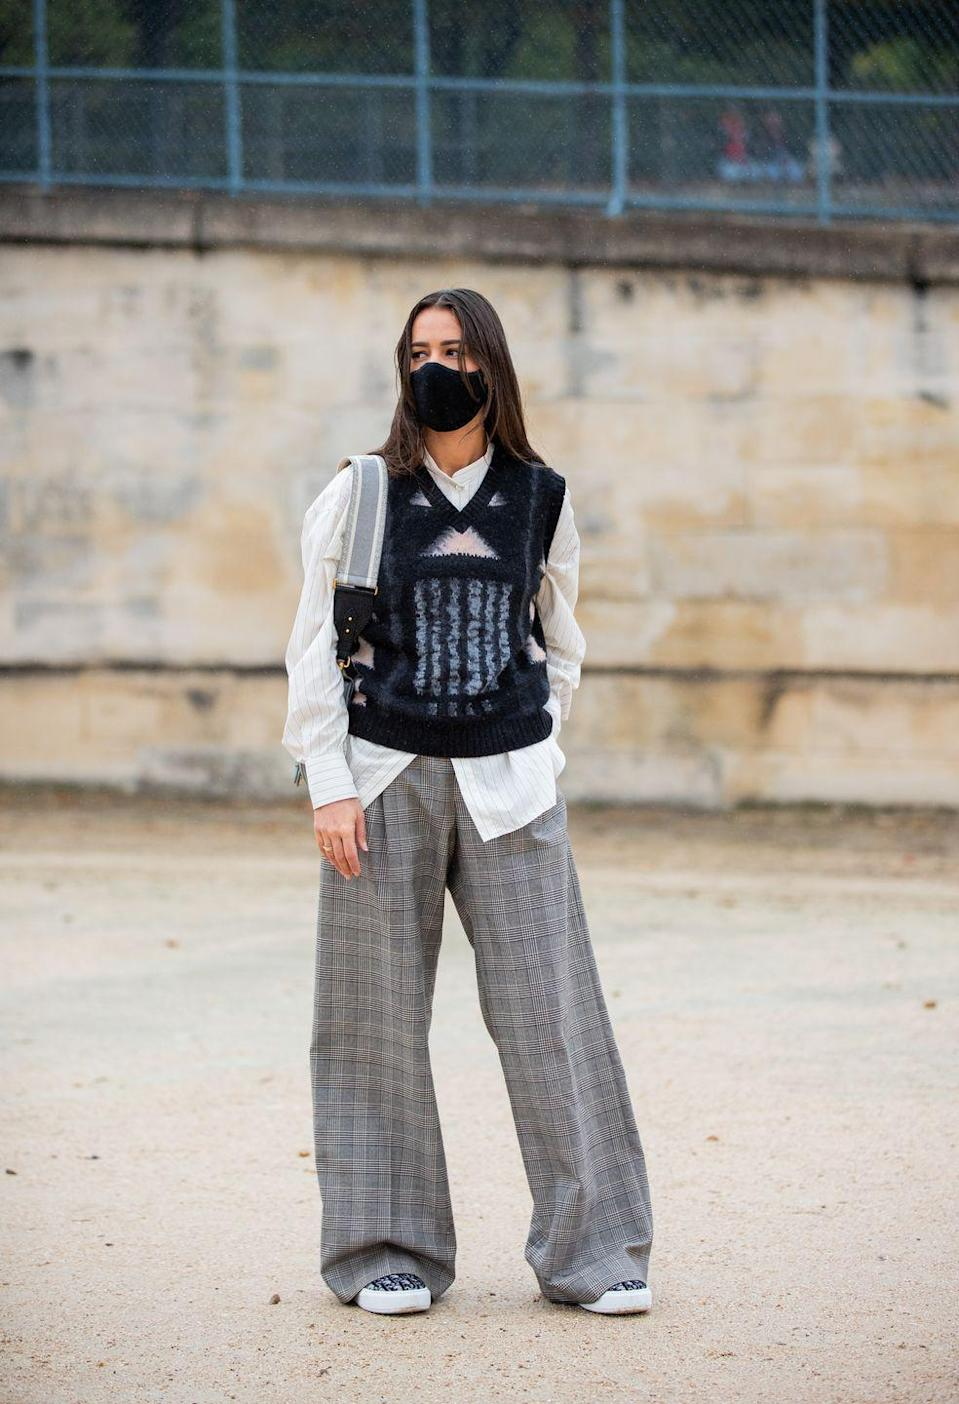 <p>This trend came in hard and fast last year, with all the fashion major players wearing them across our feed, but let's not abandon the knitted vest now good weather's approaching. Worn over dresses or crisp shirts, it's the ideal transeasonal knit. </p>